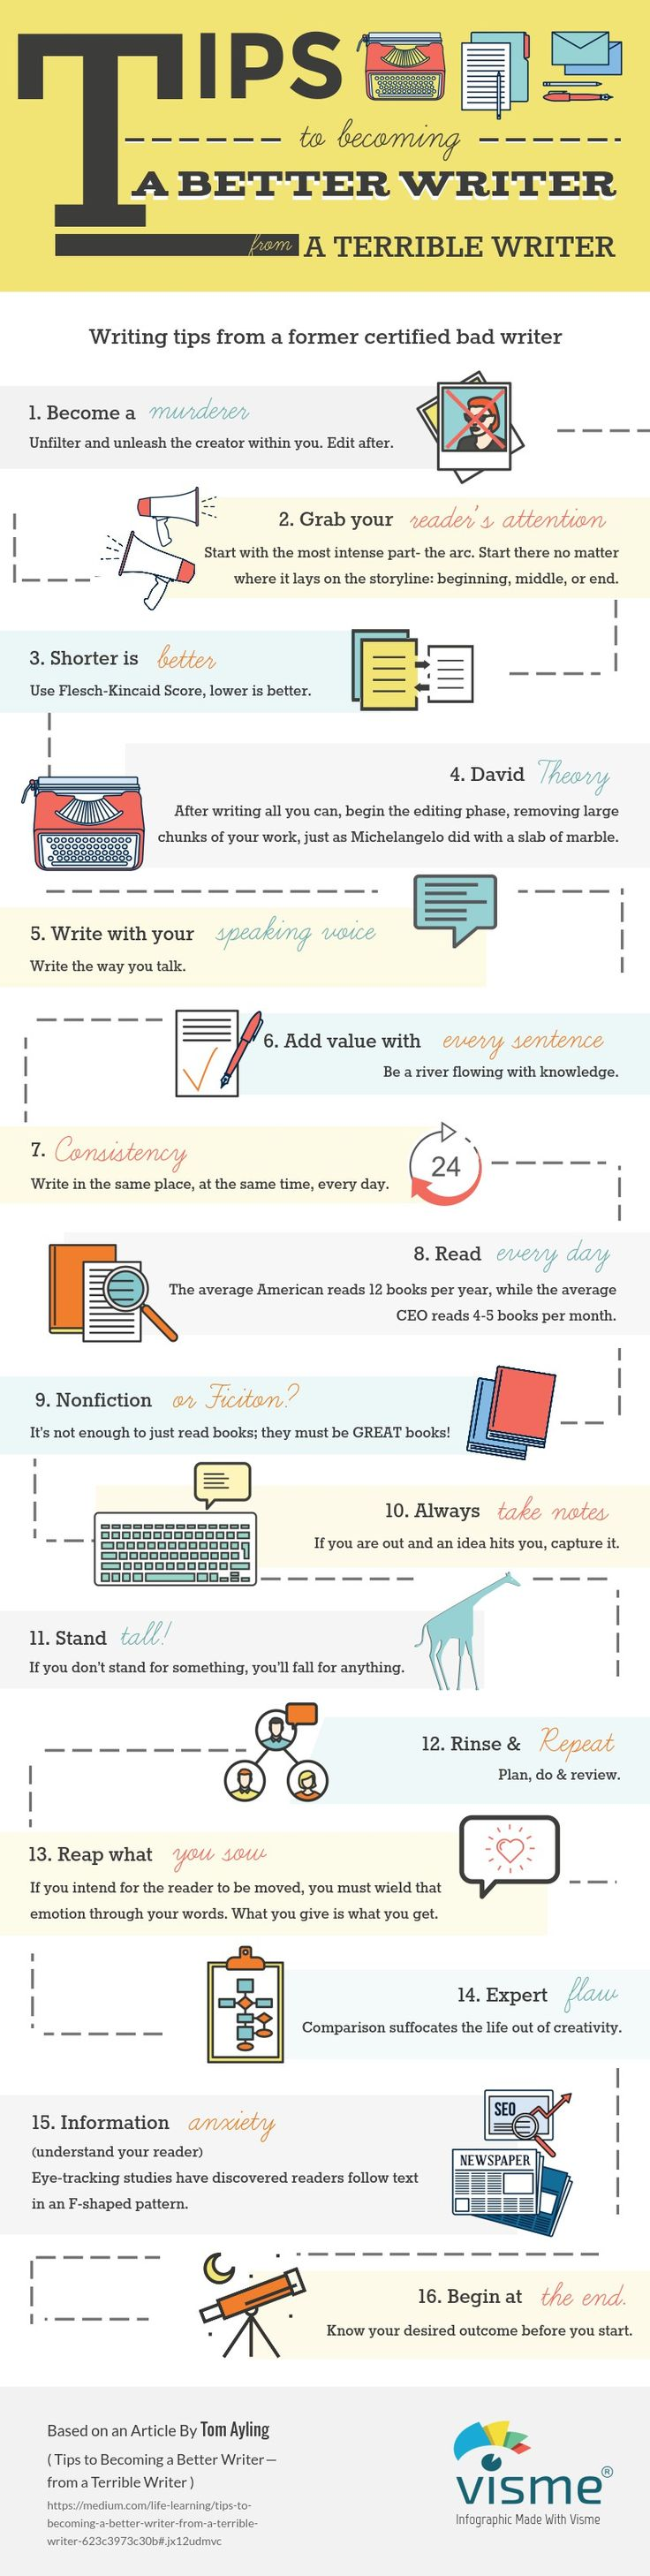 best images about about fiction writing writing 17 best images about about fiction writing writing courses novels and writers